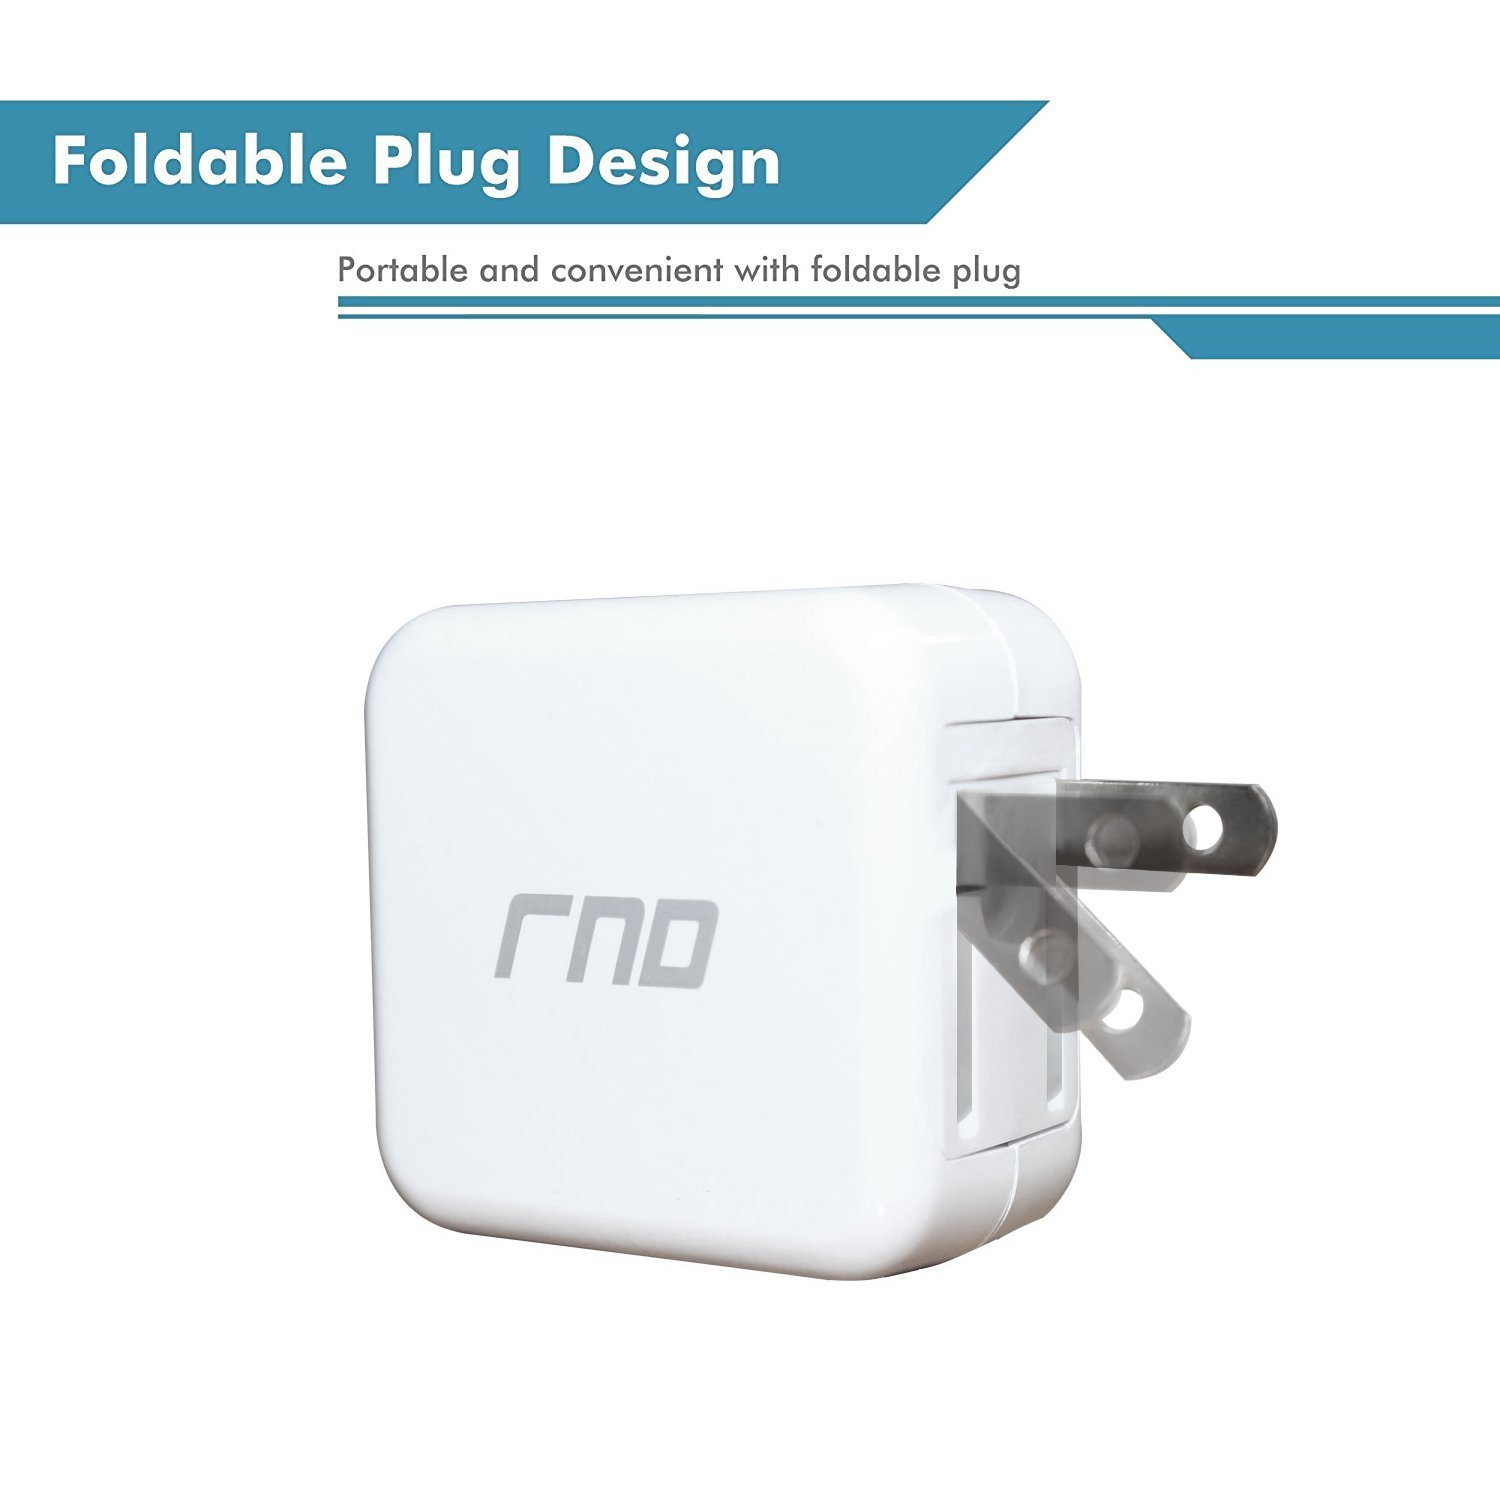 RND QC3.0 Quick Charge compatible USB AC / Wall Charger (QC2.0 Compatible) wi... image 3